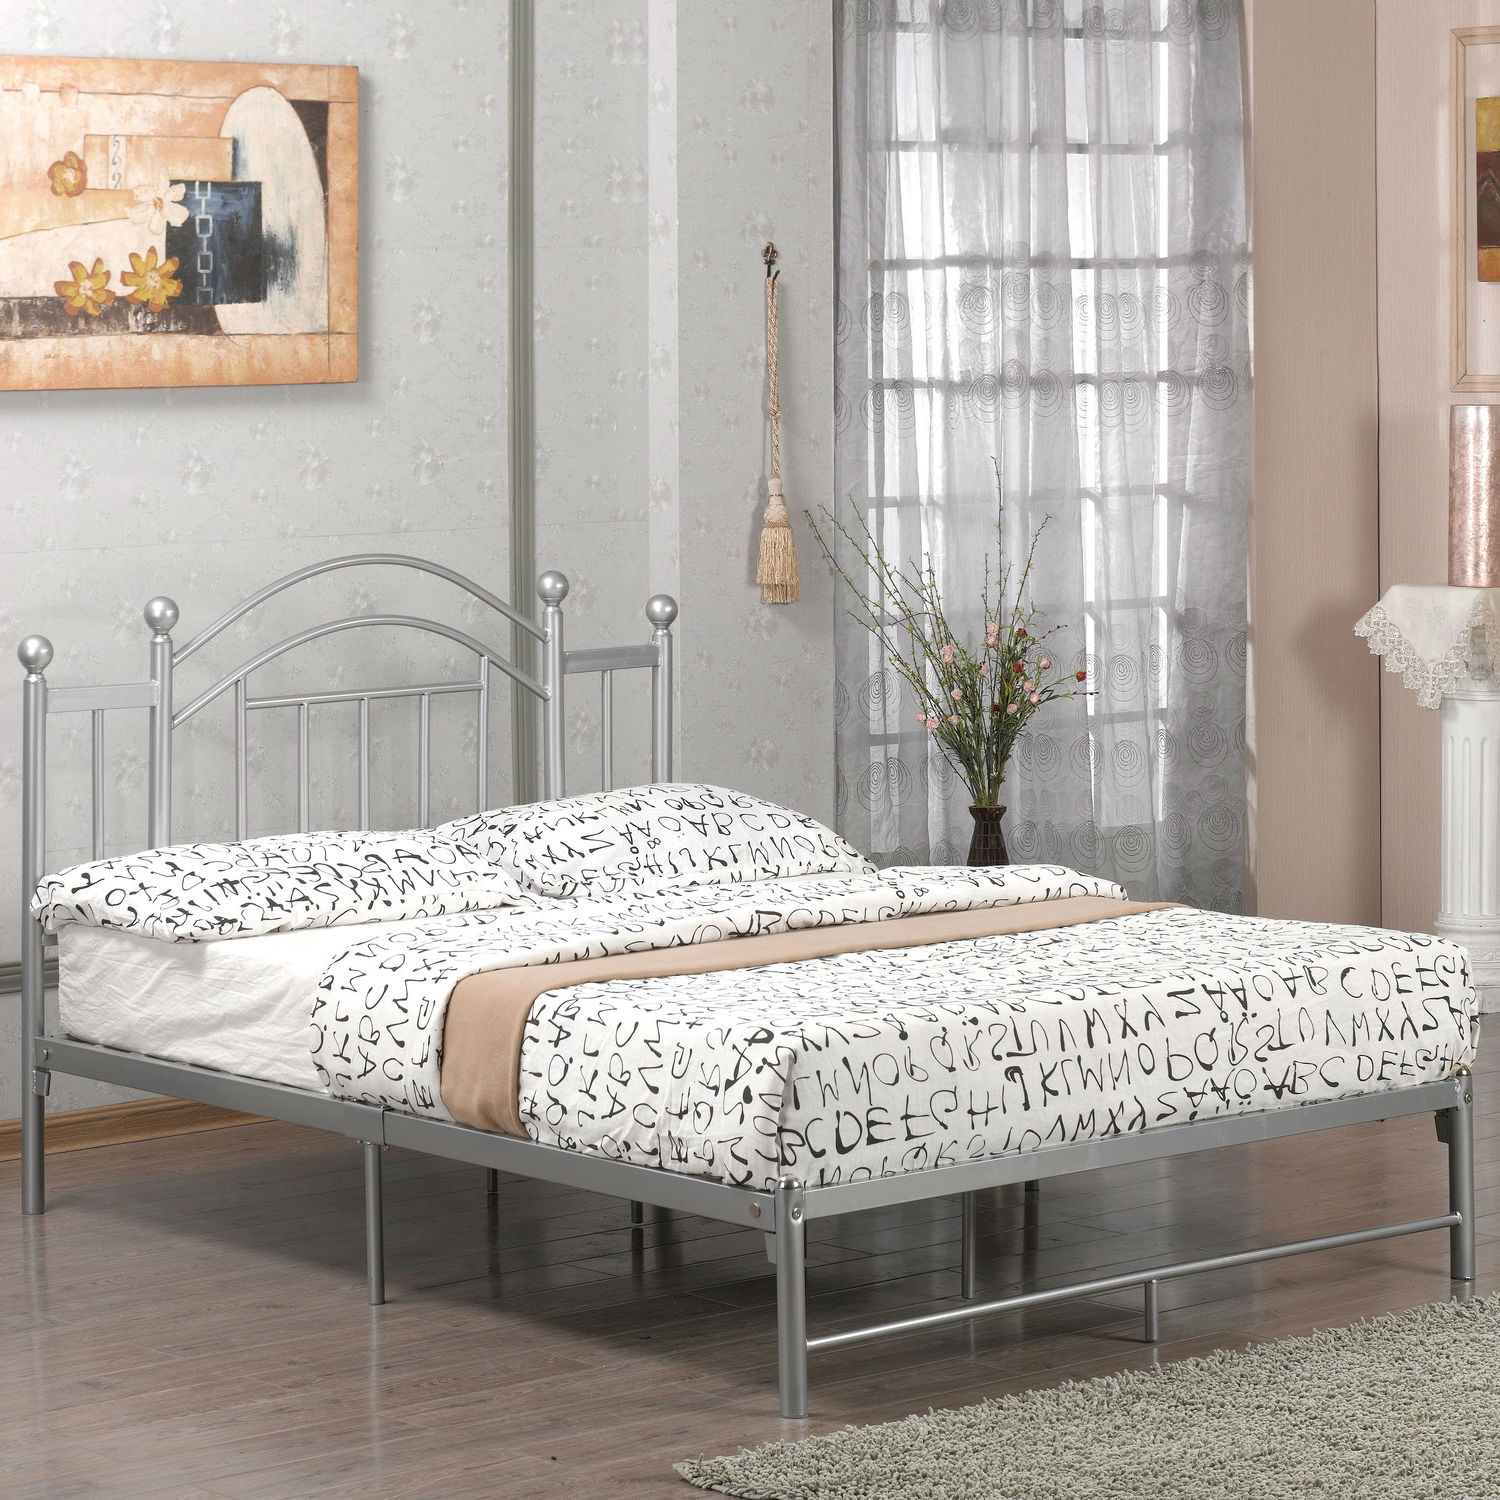 Full Size Metal Platform Bed Frame With Headboard And